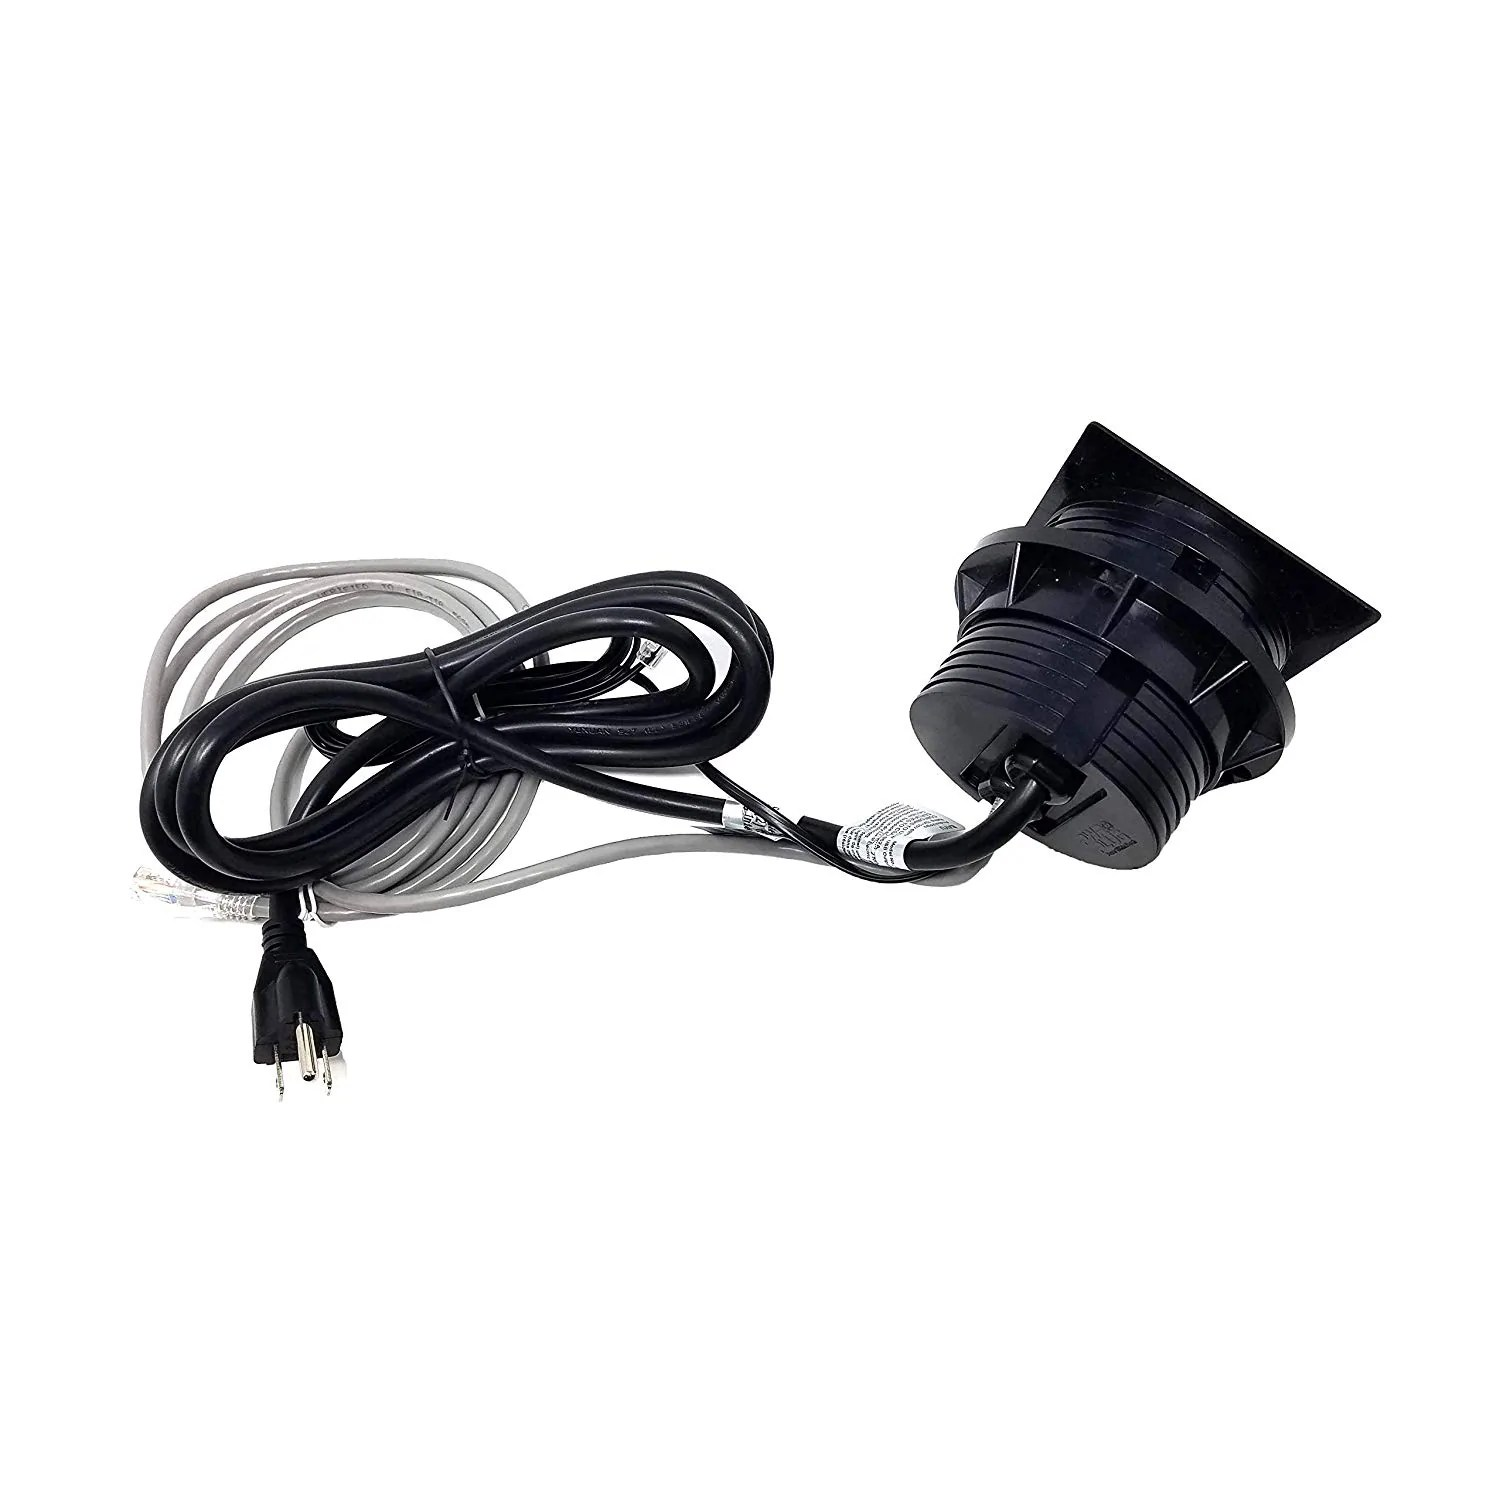 hight resolution of  pwr plug power grommet with phone jack universal fit 3 1 8 3